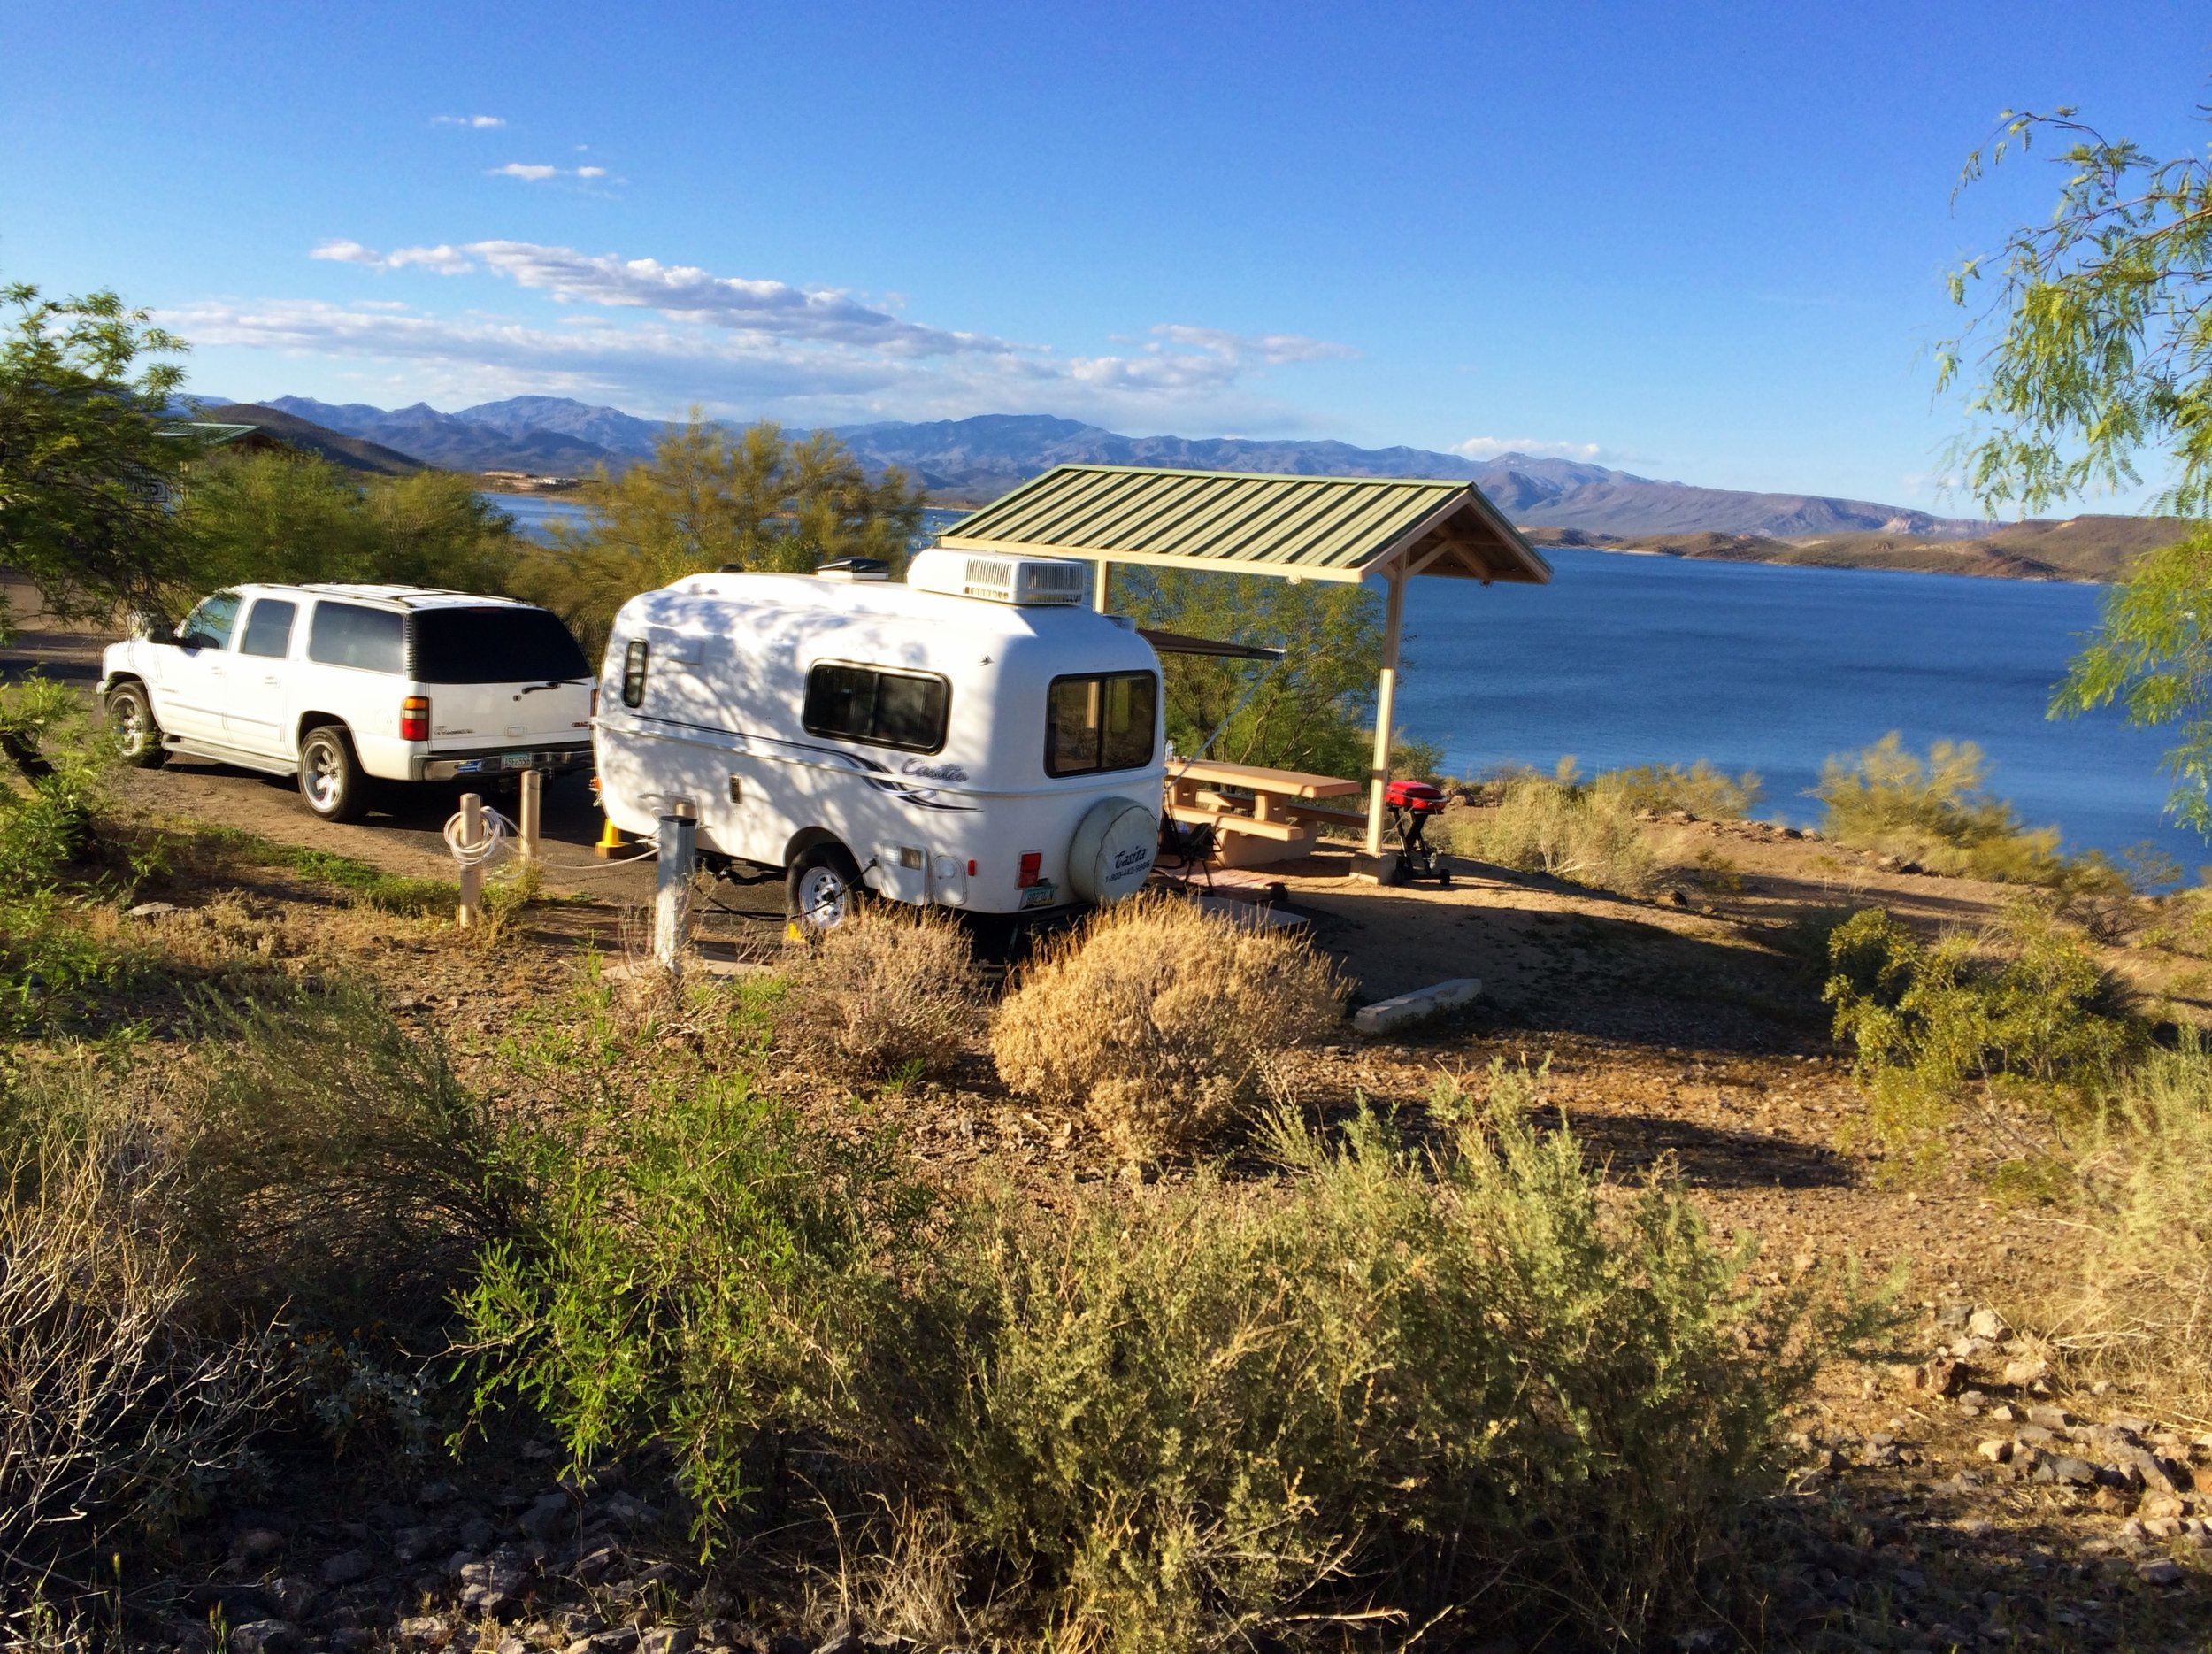 """July 2014, it was our first night in our cozy 17 foot casita. We were excited, happy and content. As we looked around at the all big rigs beside us, we thought our camper was a perfect size for our weekend camping trips! Big enough For Lon and I, the dog and a couple grandkids, or so we thought! Fast forward to 2019….our dream of traveling full-time, relaxing, hiking, living a simple life, exploring and adventures led us to our 40 foot Tiffin. We will be leaving in a week to travel full-time, because…..""""if you never go, you will never know""""."""